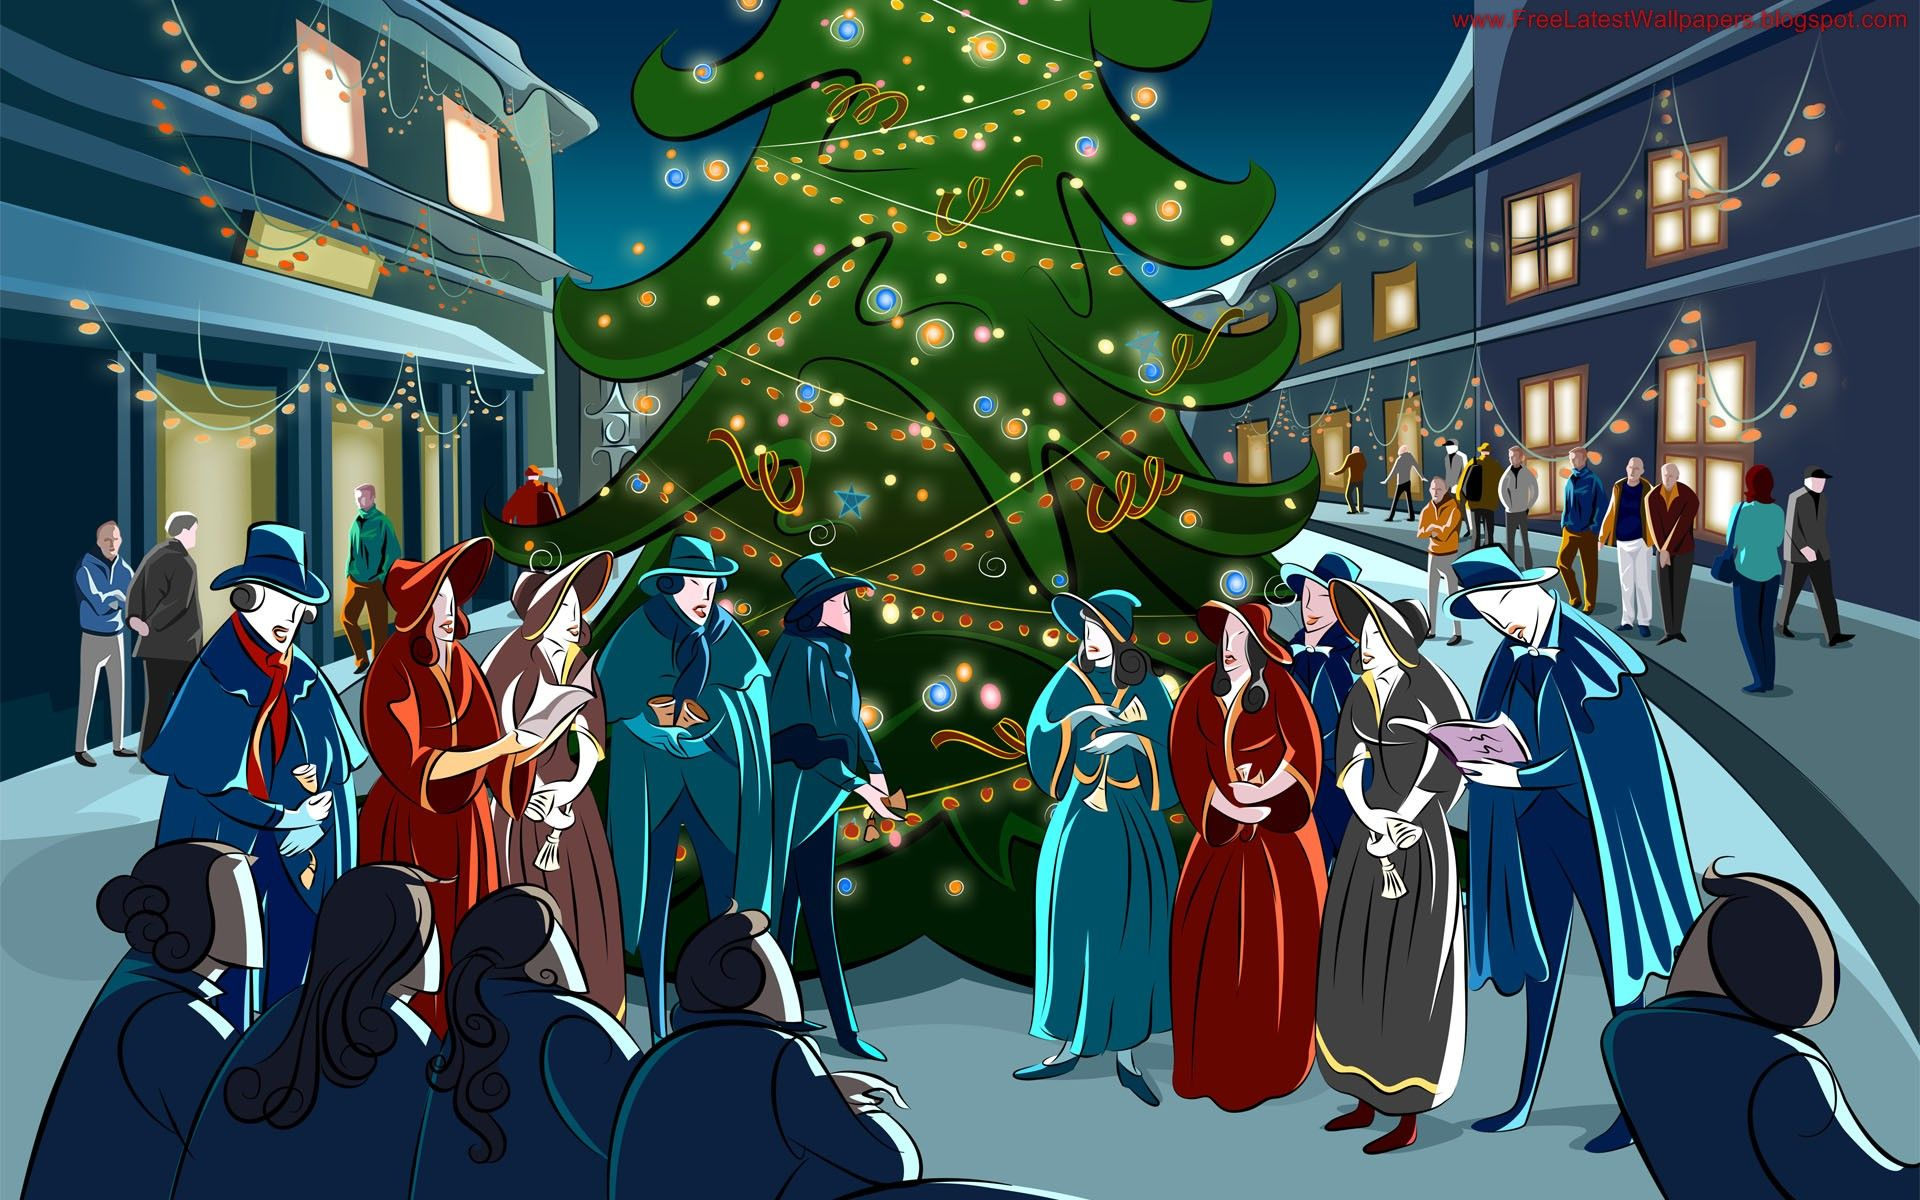 Christmas Wallpaper Carolers Christmas Landscape Christmas Tree Pictures Christmas Paintings